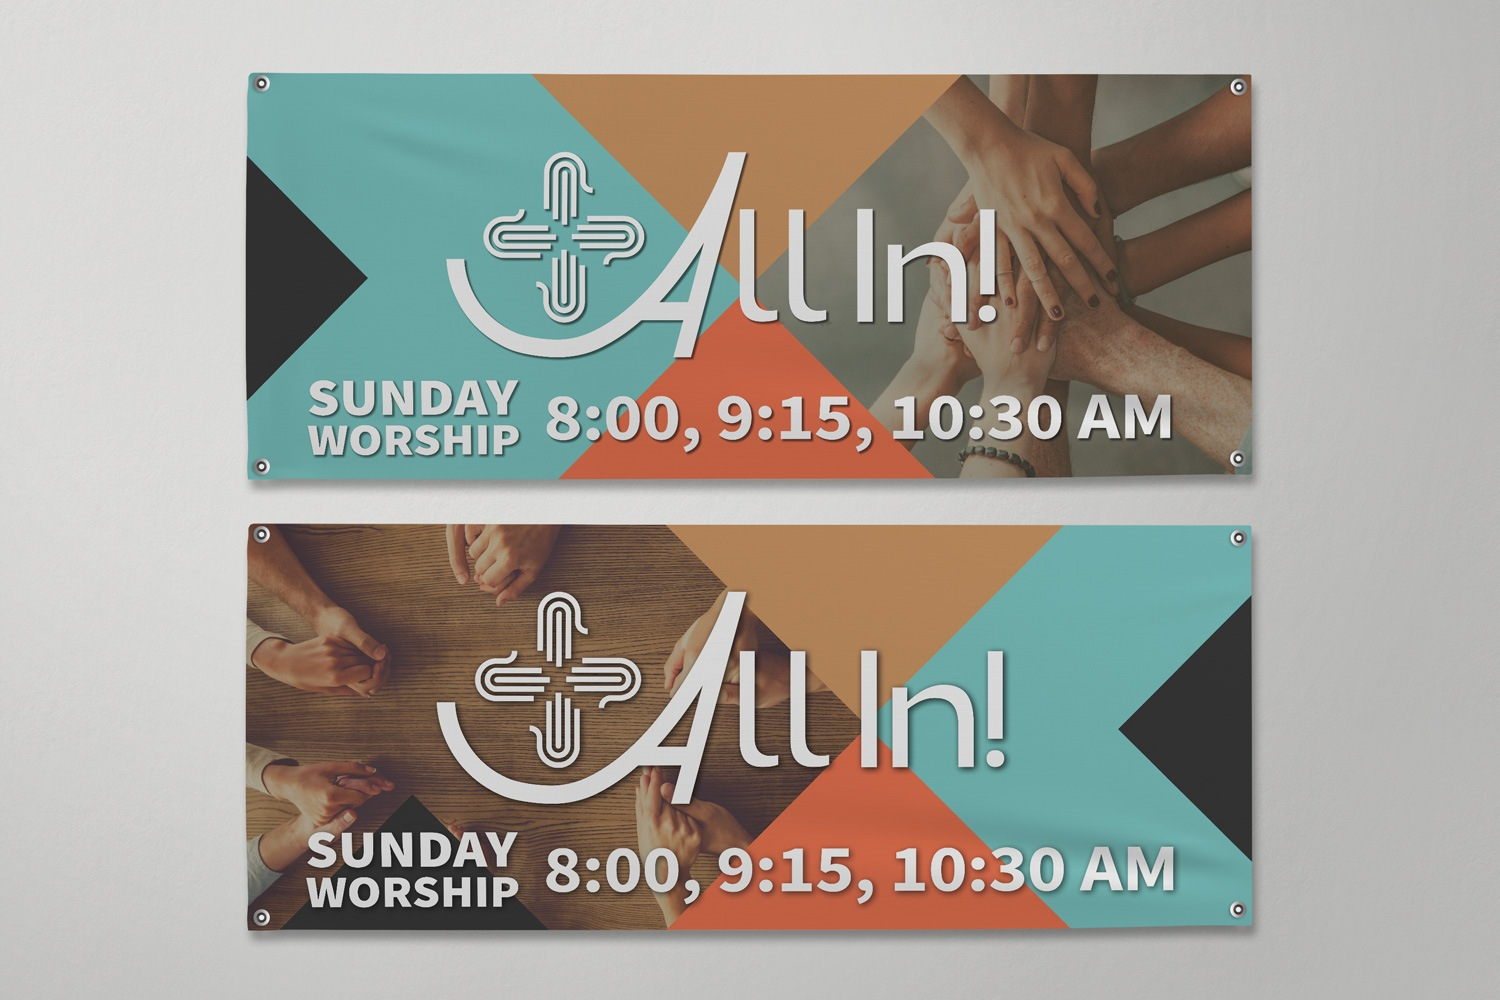 church vinyl banner  church campaign marketing communications design and printing ideas